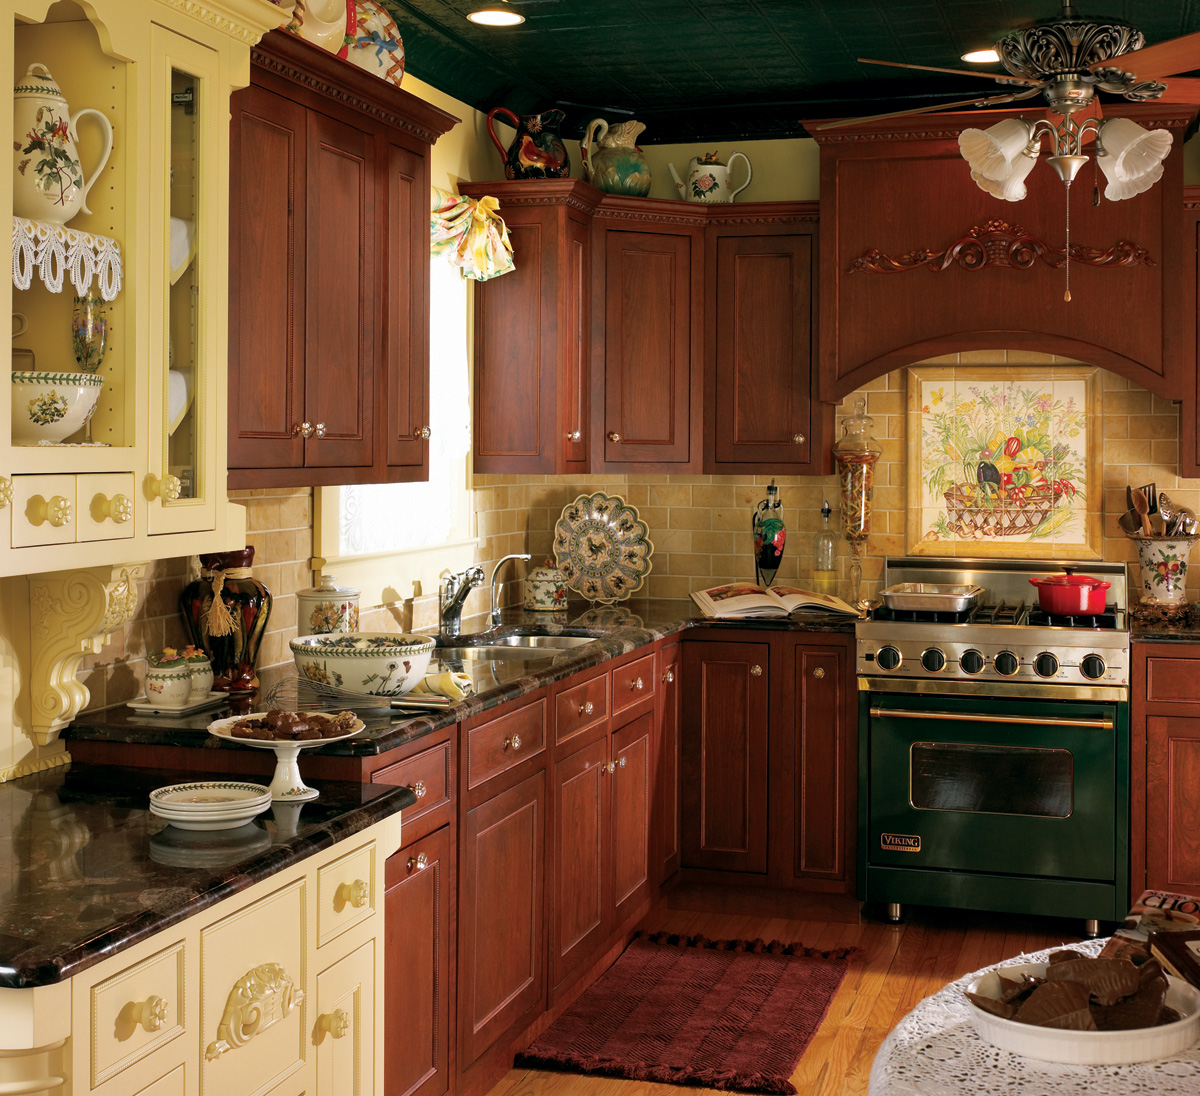 custom kitchen cabinets with delicate ornate style plain